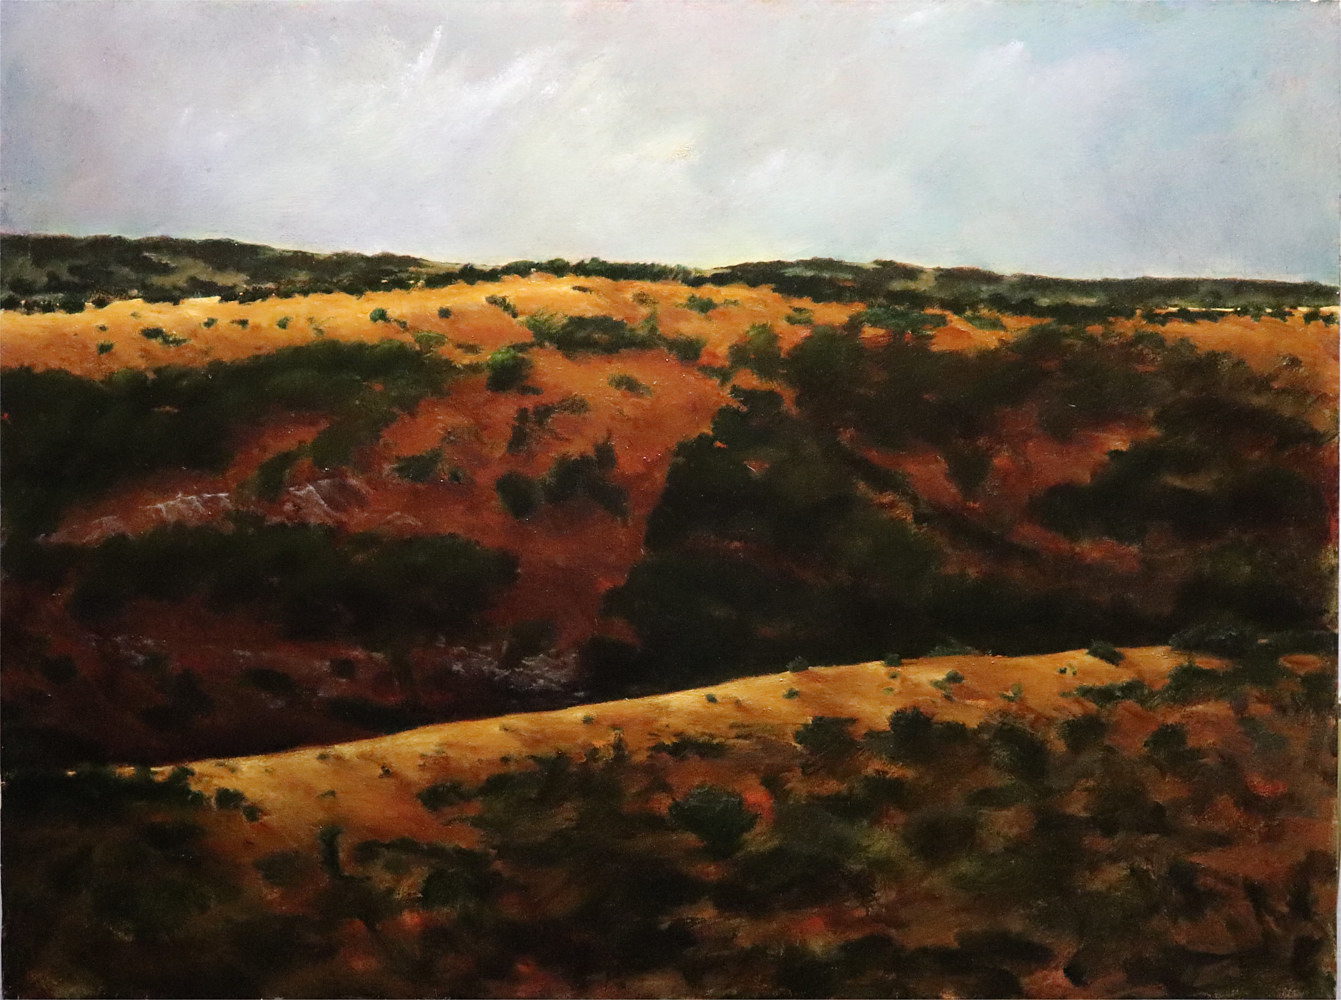 From Haldon's Ridge, 5-L Ranch, Leakey Texas 30x40 by Gary Nowlin